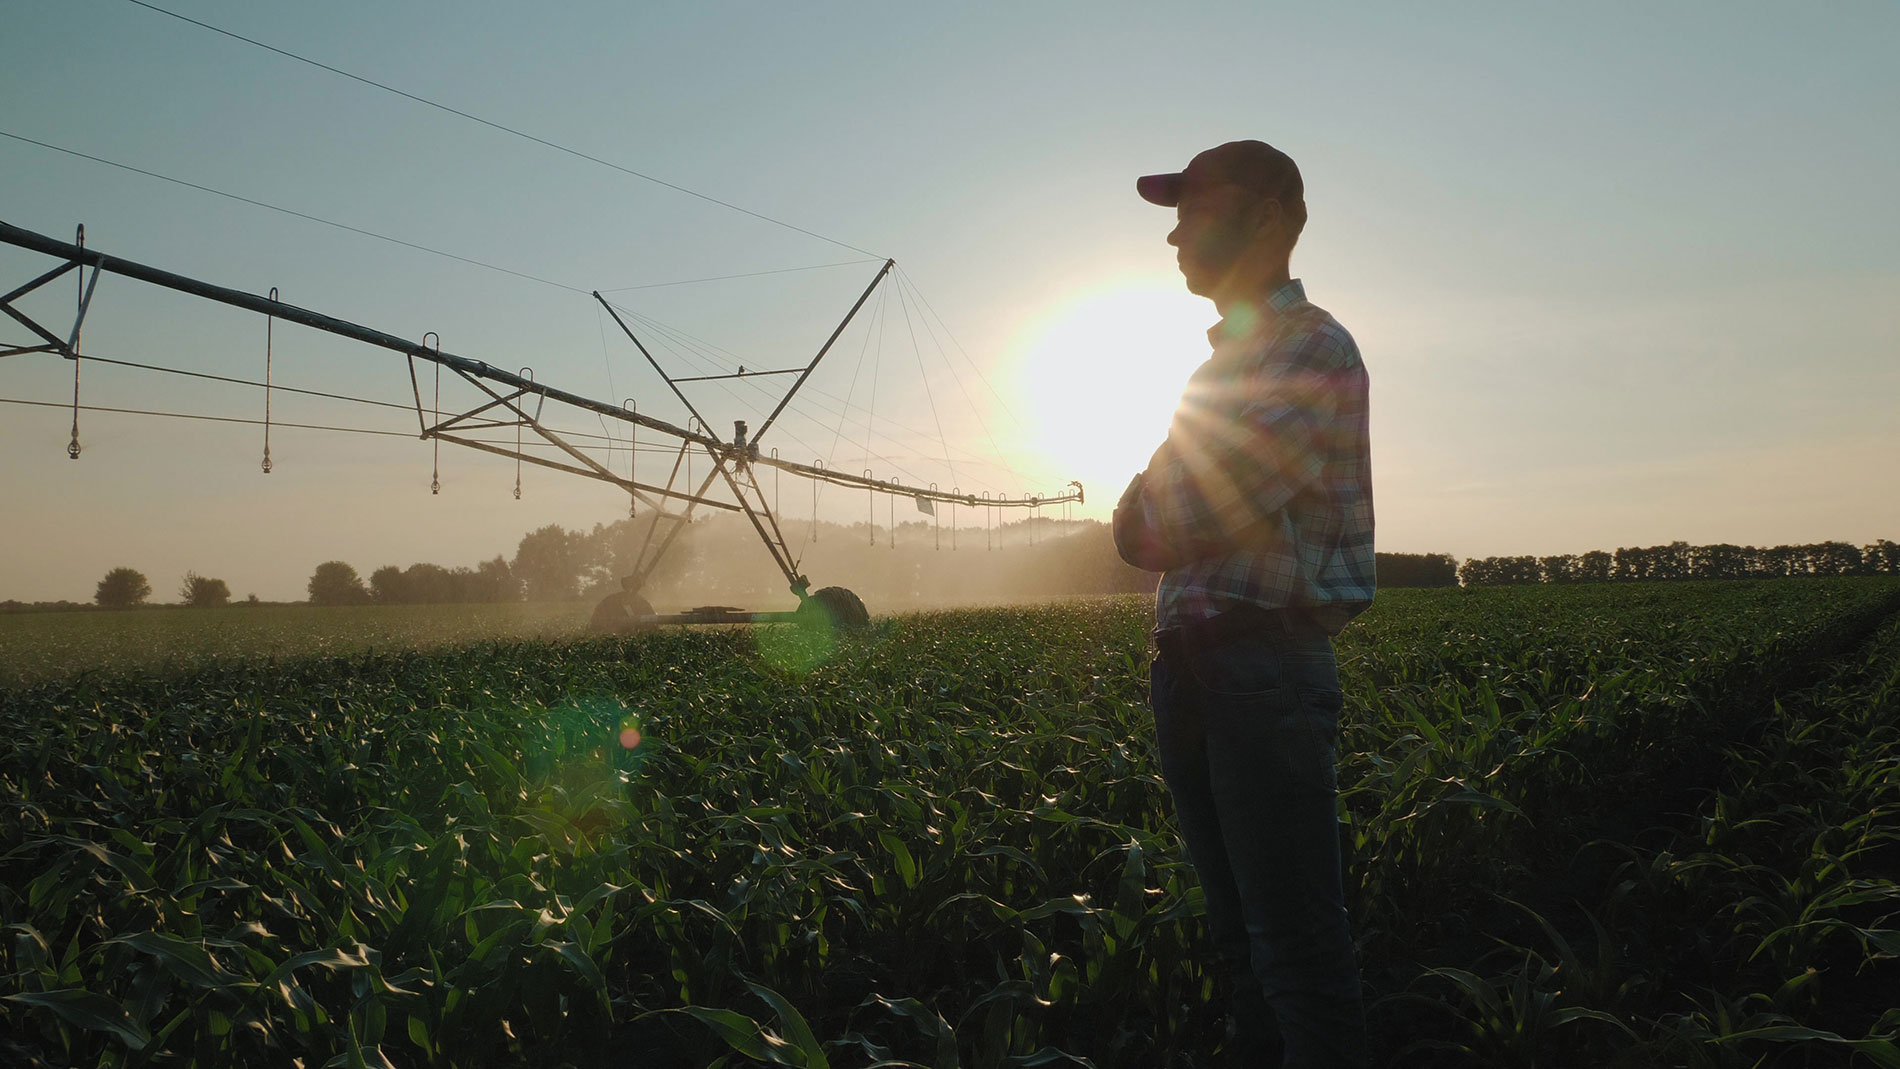 Family-Owned Businesses and Farms